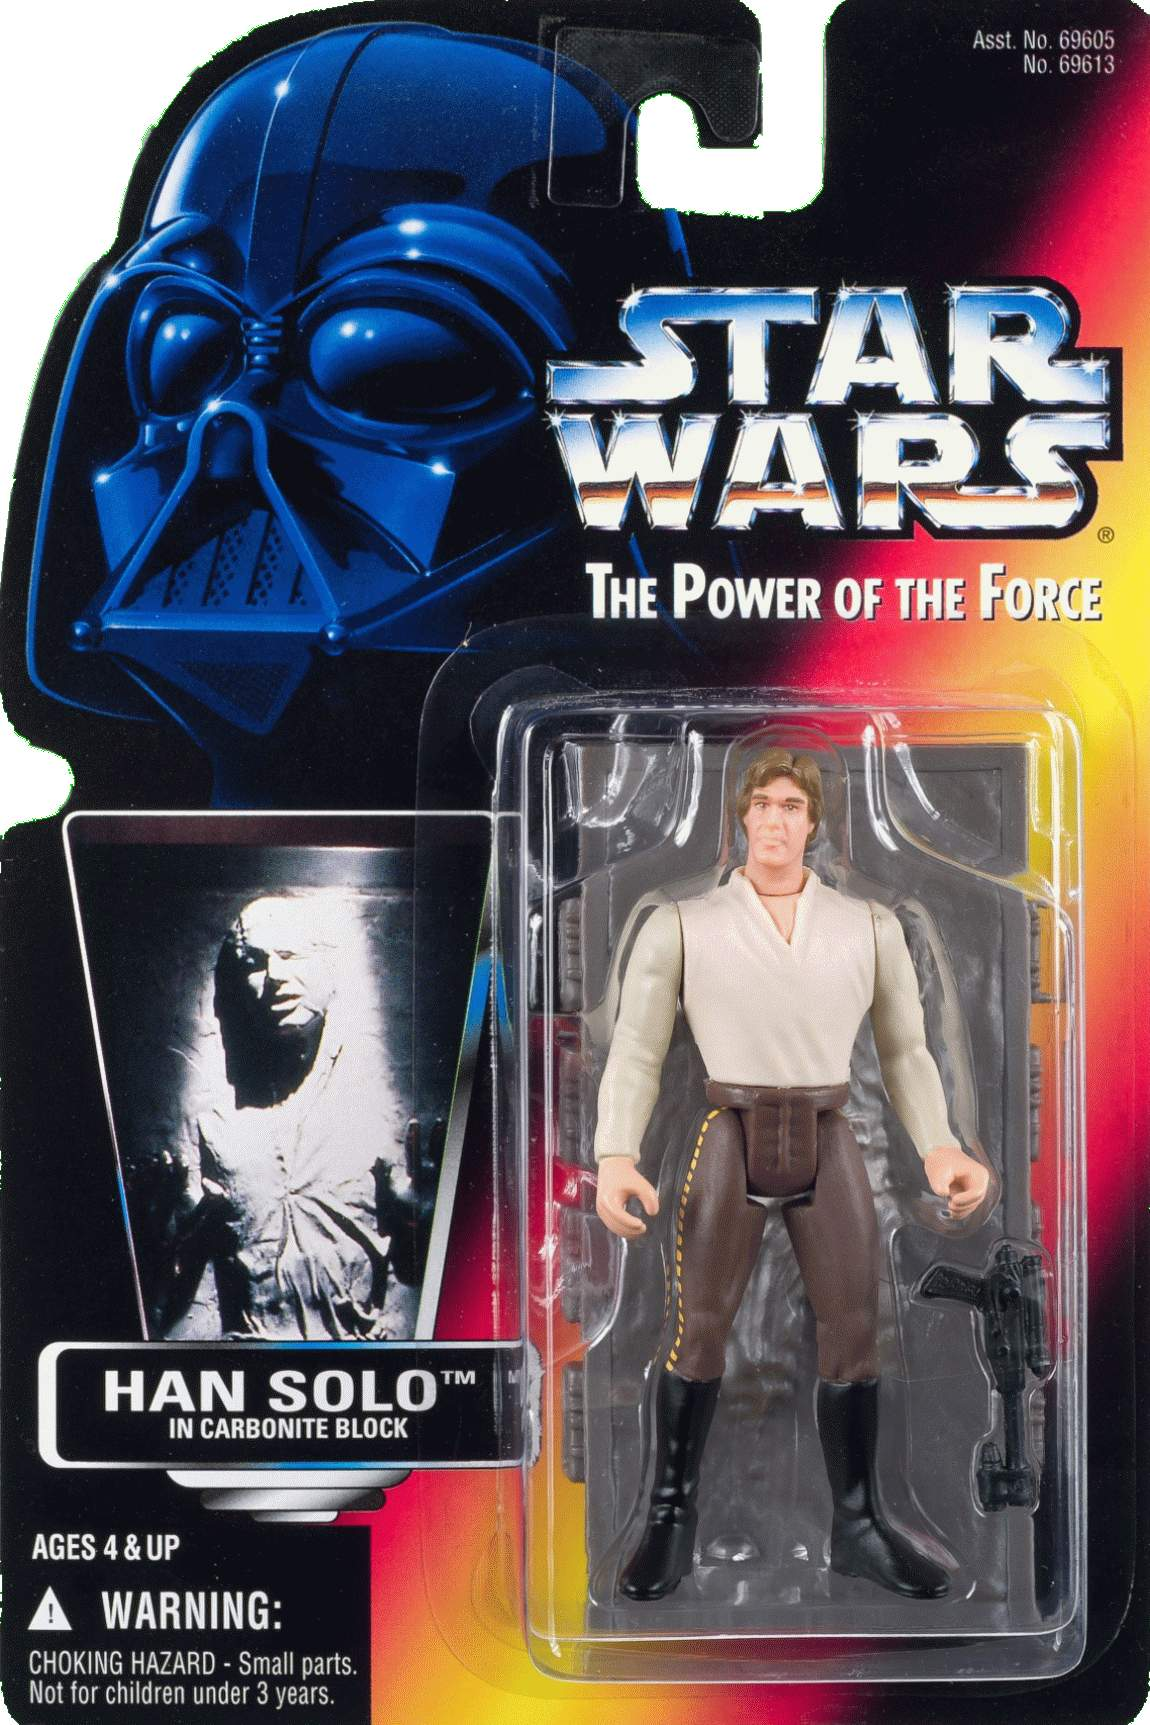 The Power of the Force 1990s Figures